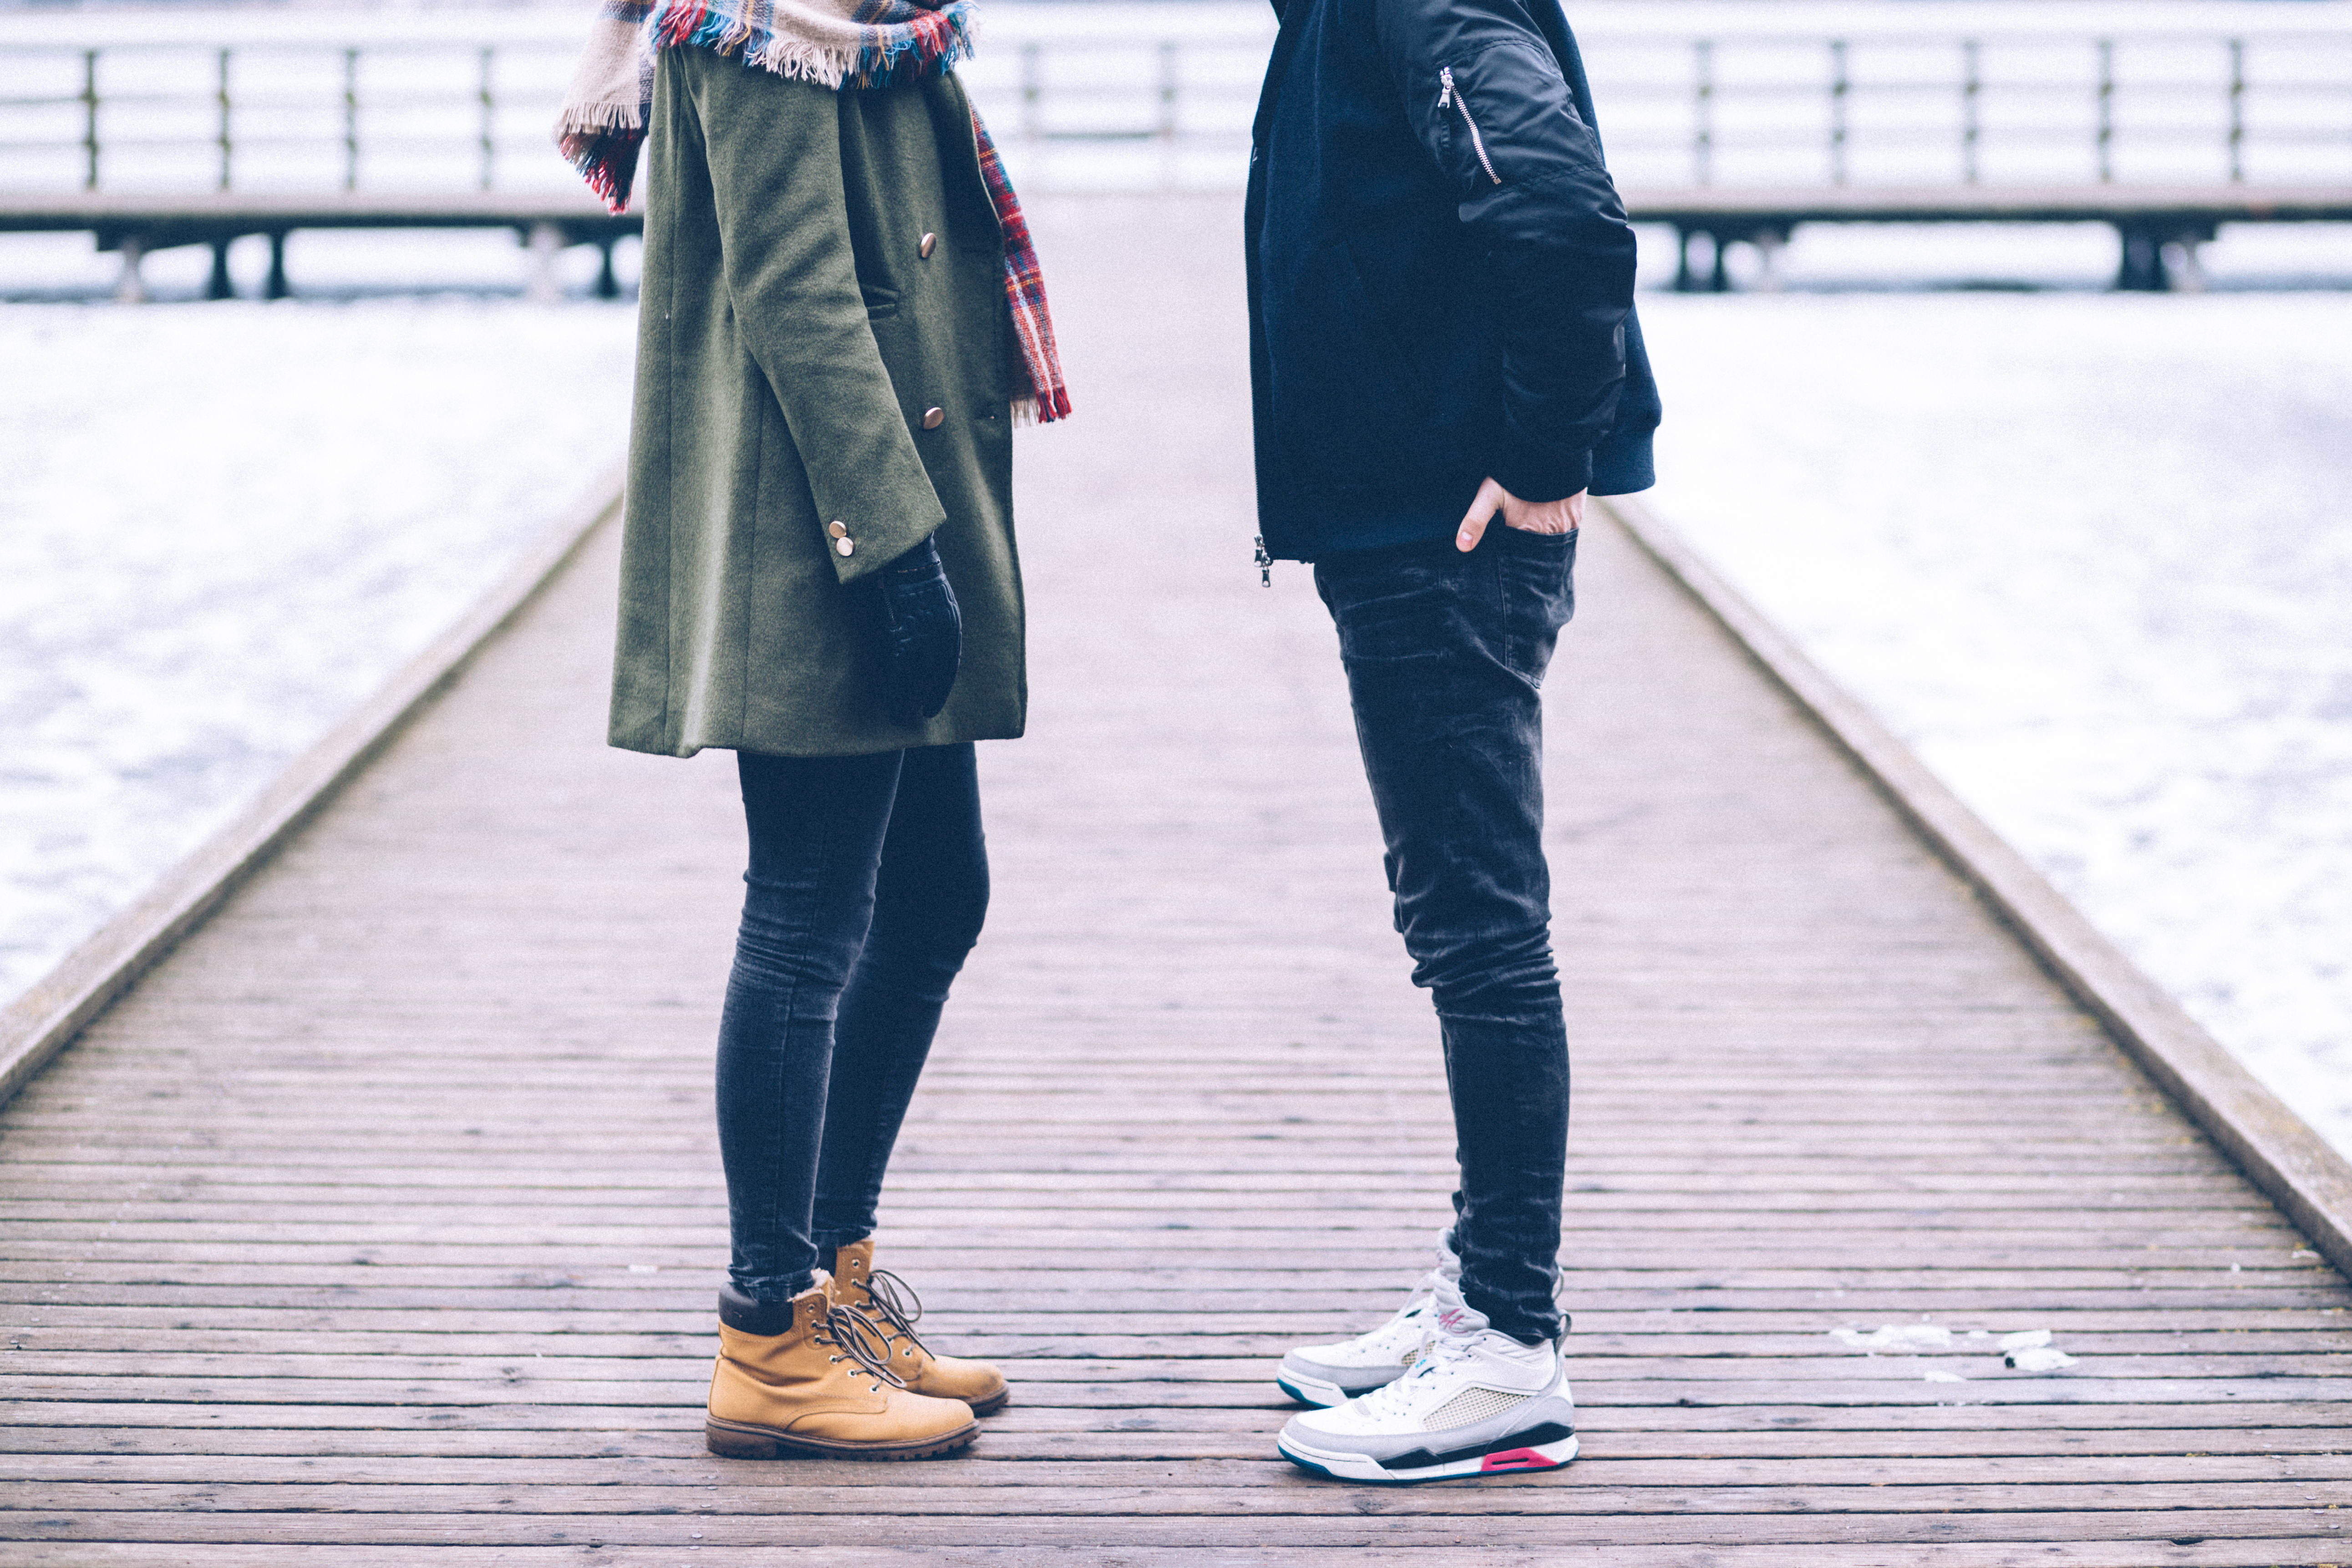 What does it mean to lose yourself in a relationship